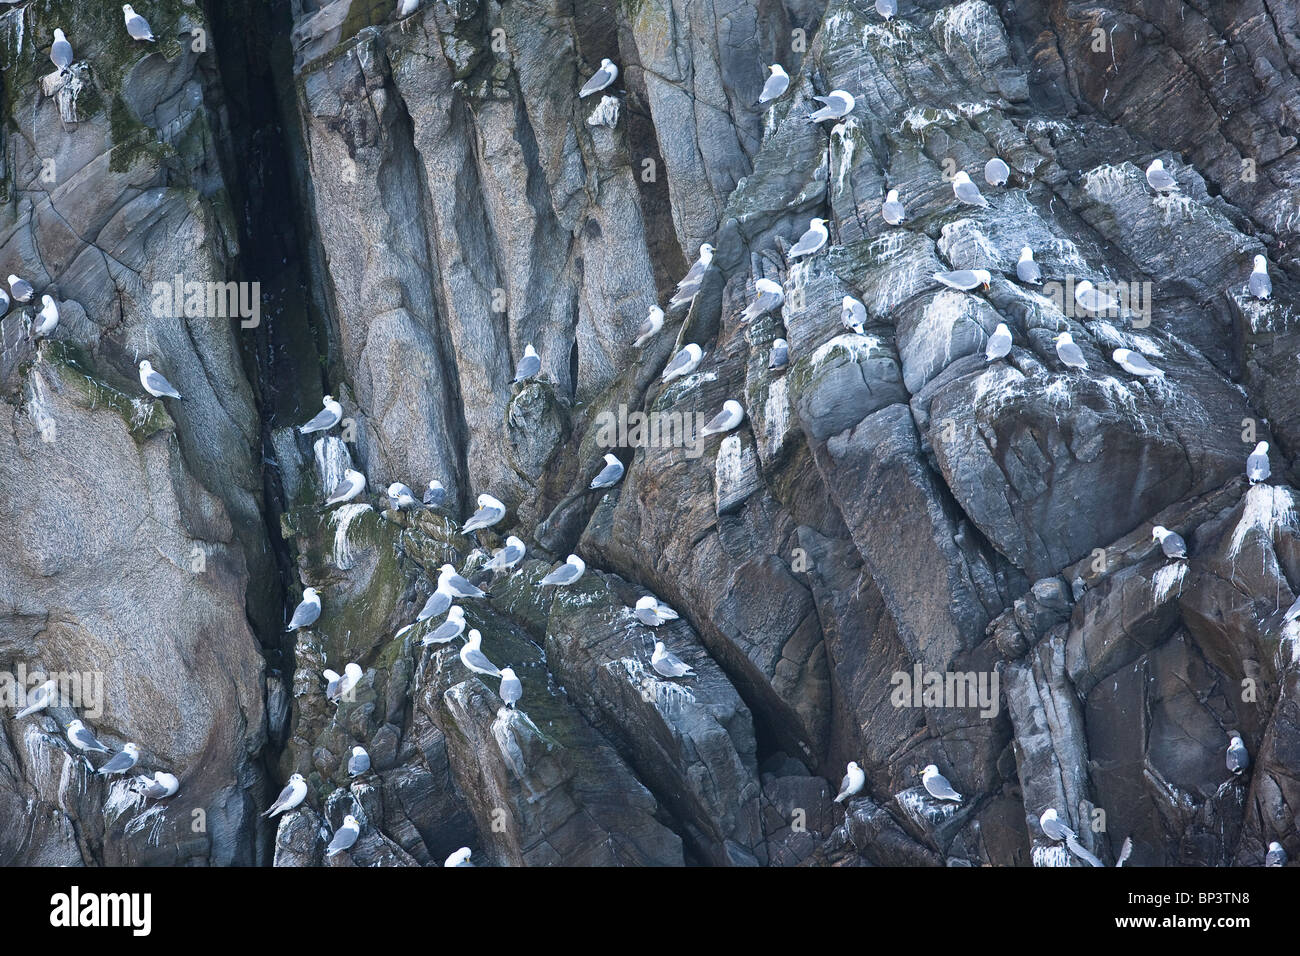 A colony of Kittiwakes nesting on the steep cliff Rundebranden at the island Runde on the west coast of Norway - Stock Image